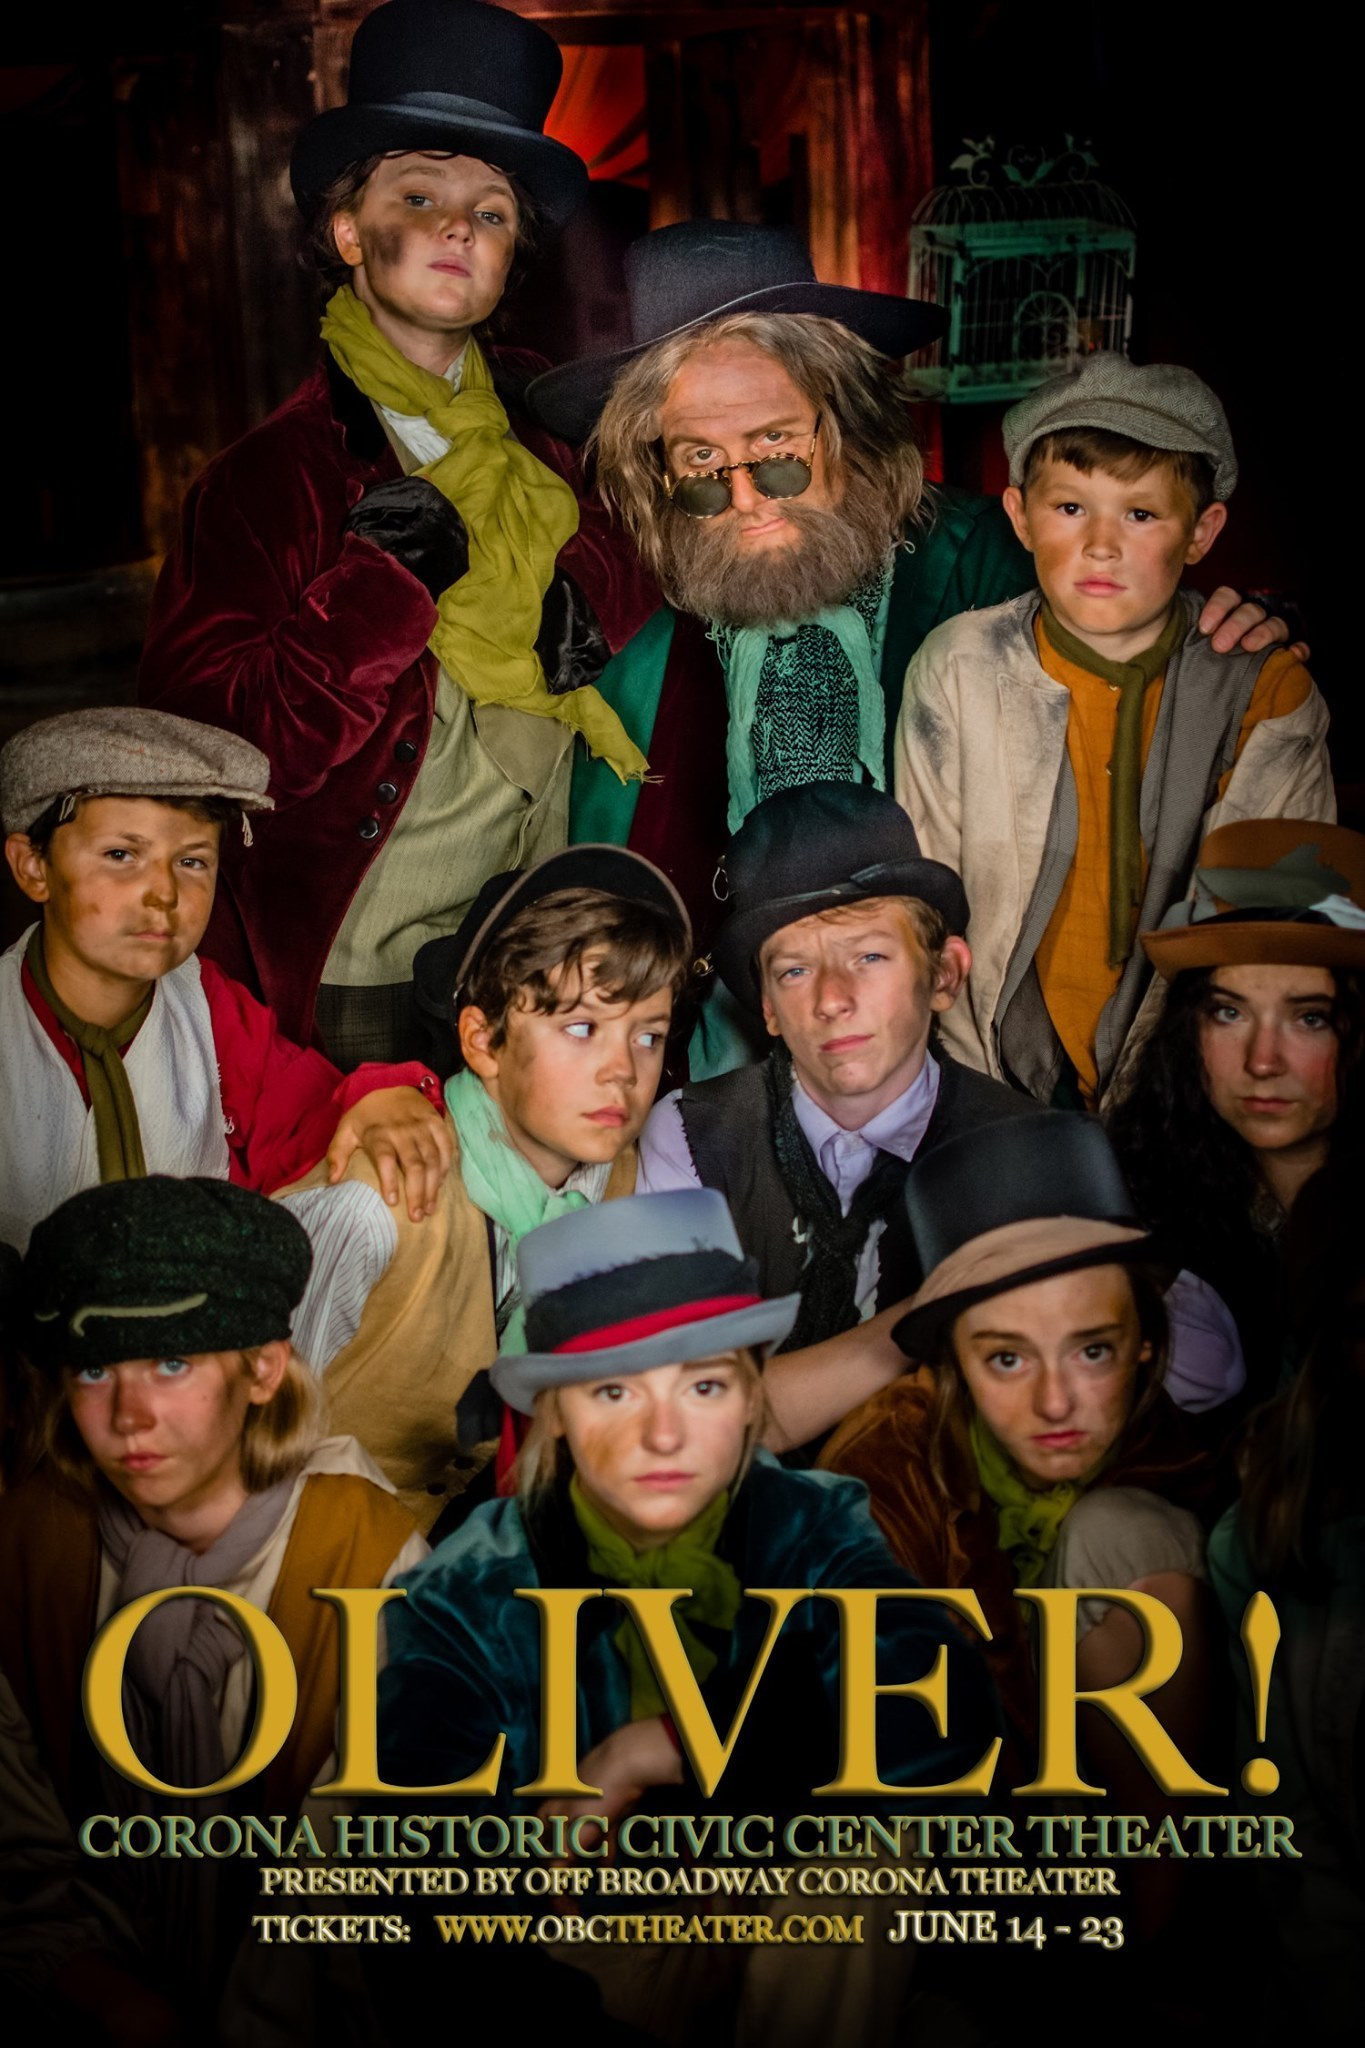 BWW Review: OLIVER! at OBC Theater in Corona is Delectable